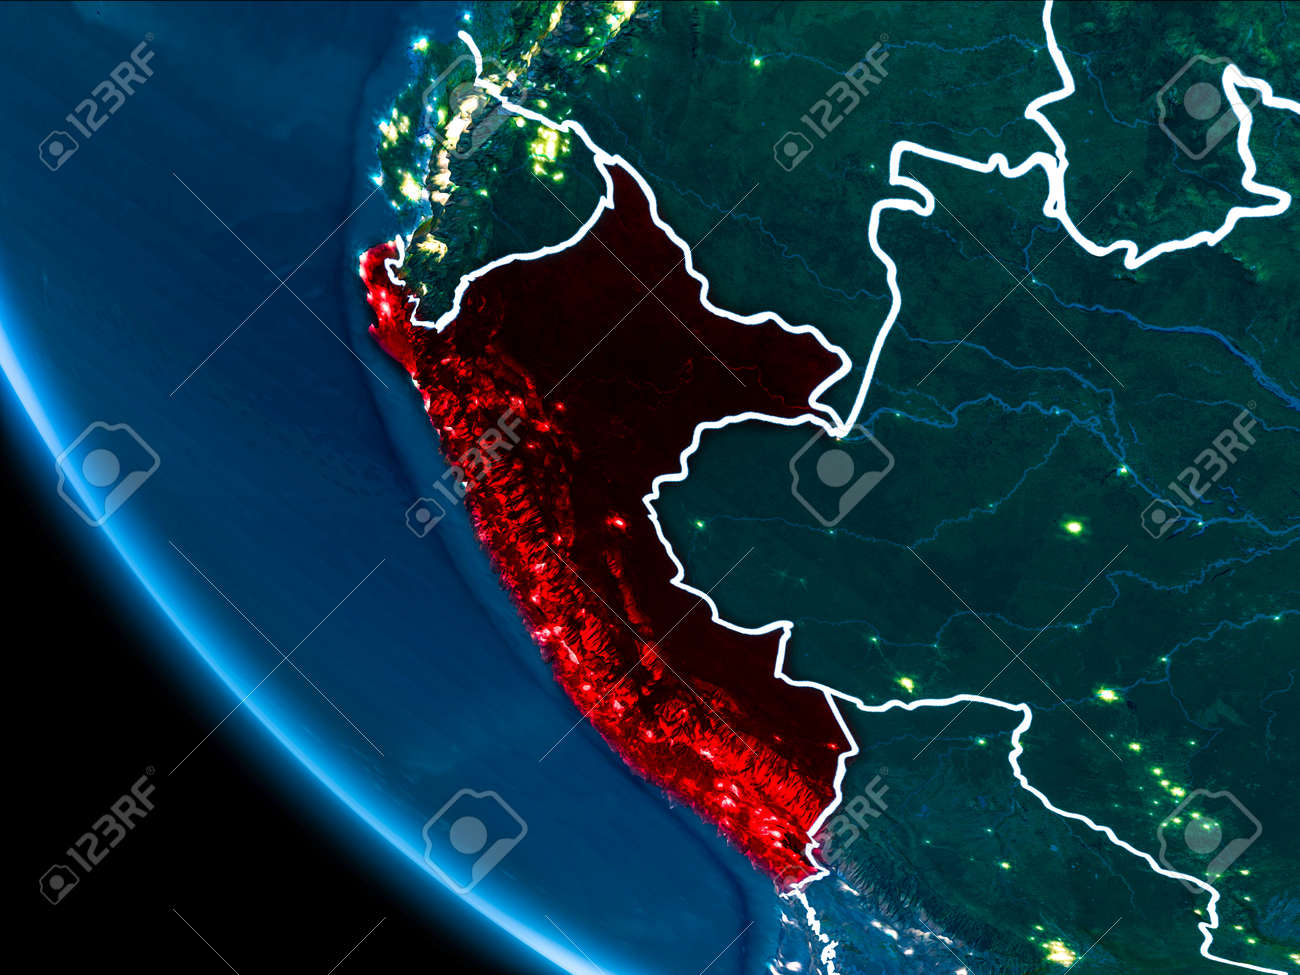 Map of peru in red as seen from space on planet earth at night illustration map of peru in red as seen from space on planet earth at night with white borderlines and city lights 3d illustration gumiabroncs Gallery